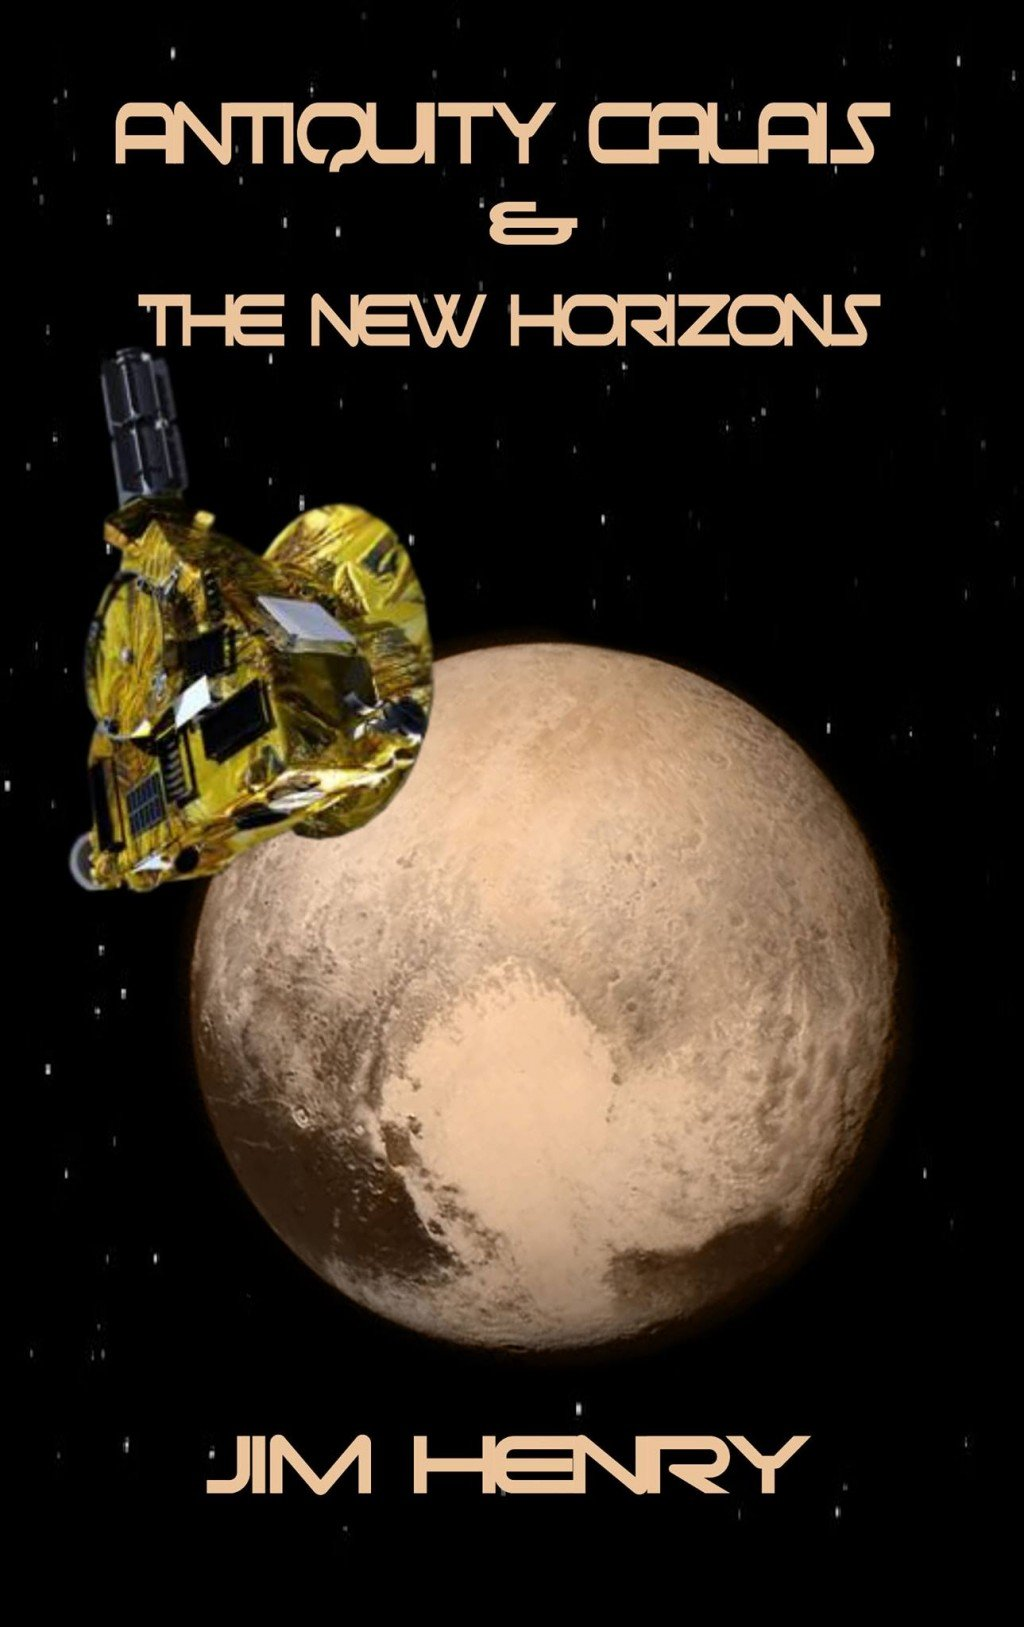 """pluto should be a planet essay Some astronomers say that pluto should be classified as a """"minor planet"""" due to its size, physical characteristics, and other factors on the other hand, some astronomers defend pluto's planet status, citing several key features indeed, most of the problem is that there is no formal definition of a planet."""